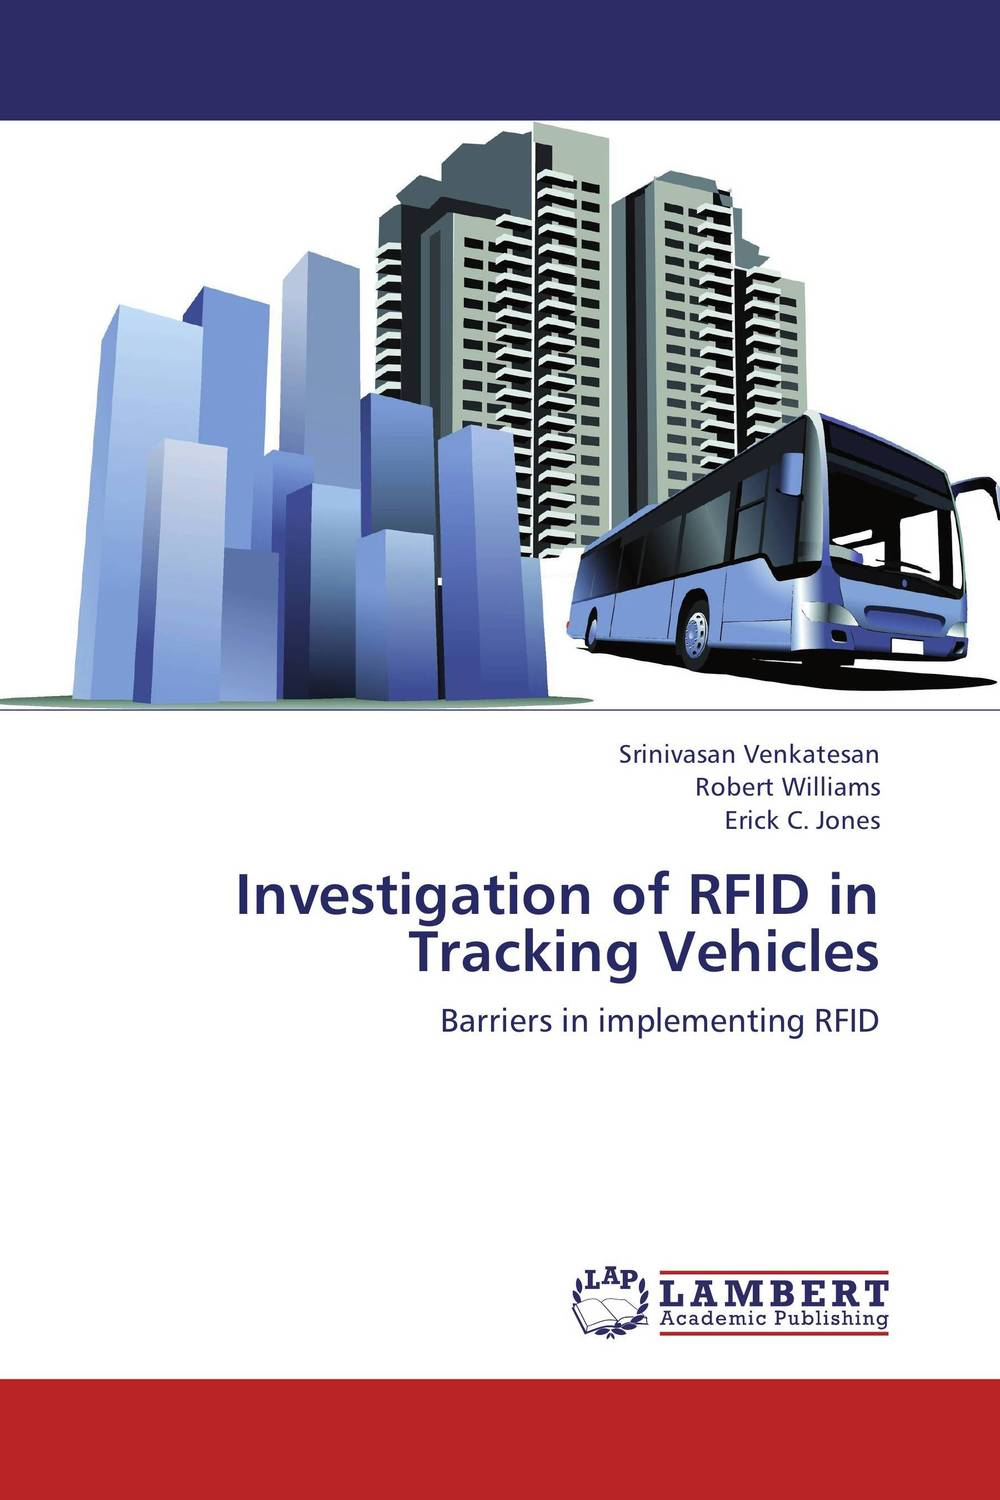 Investigation of RFID in Tracking Vehicles